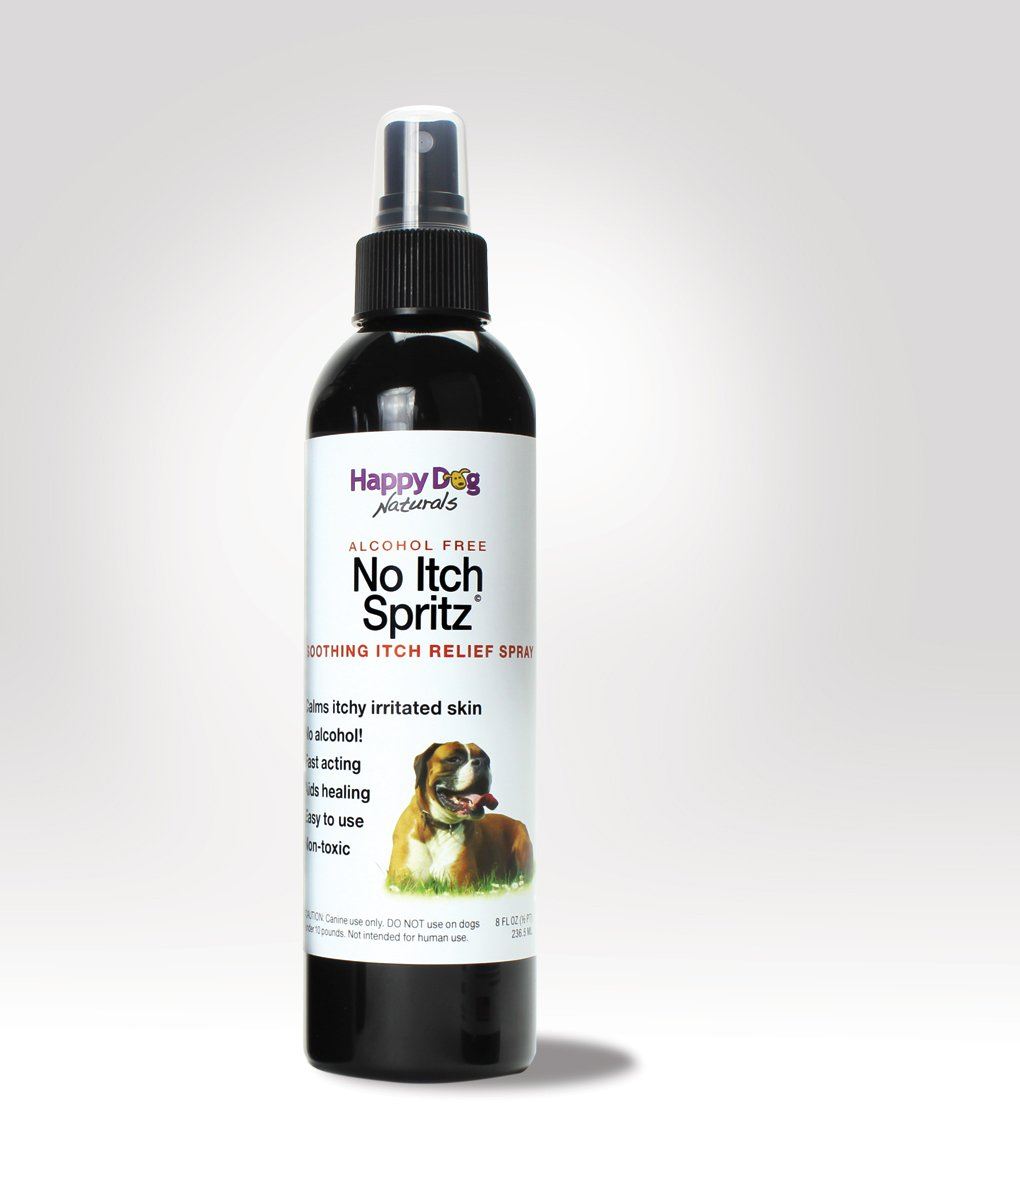 No Itch Spritz - All Natural Itch Relief for Dogs - Alcohol Free